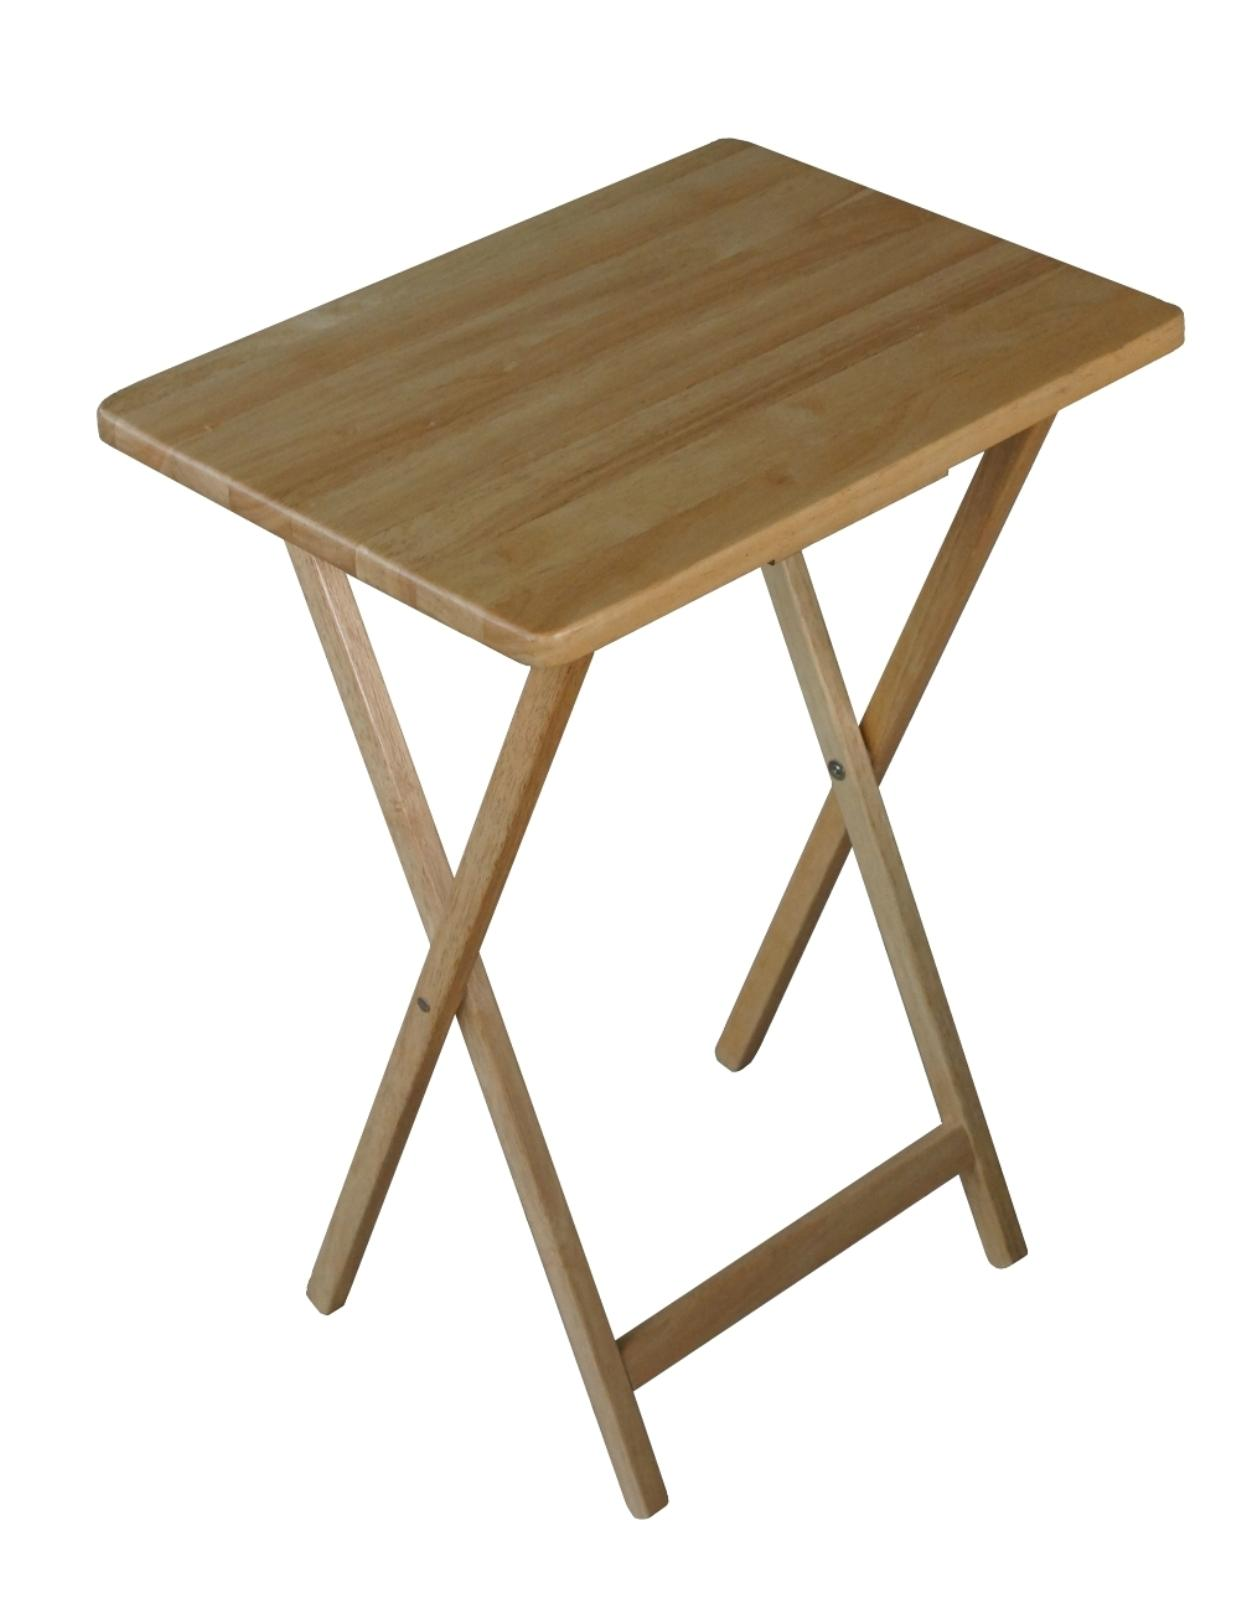 Sears In 2020 Wooden Tv Trays Walnut Furniture Living Room Tray Table